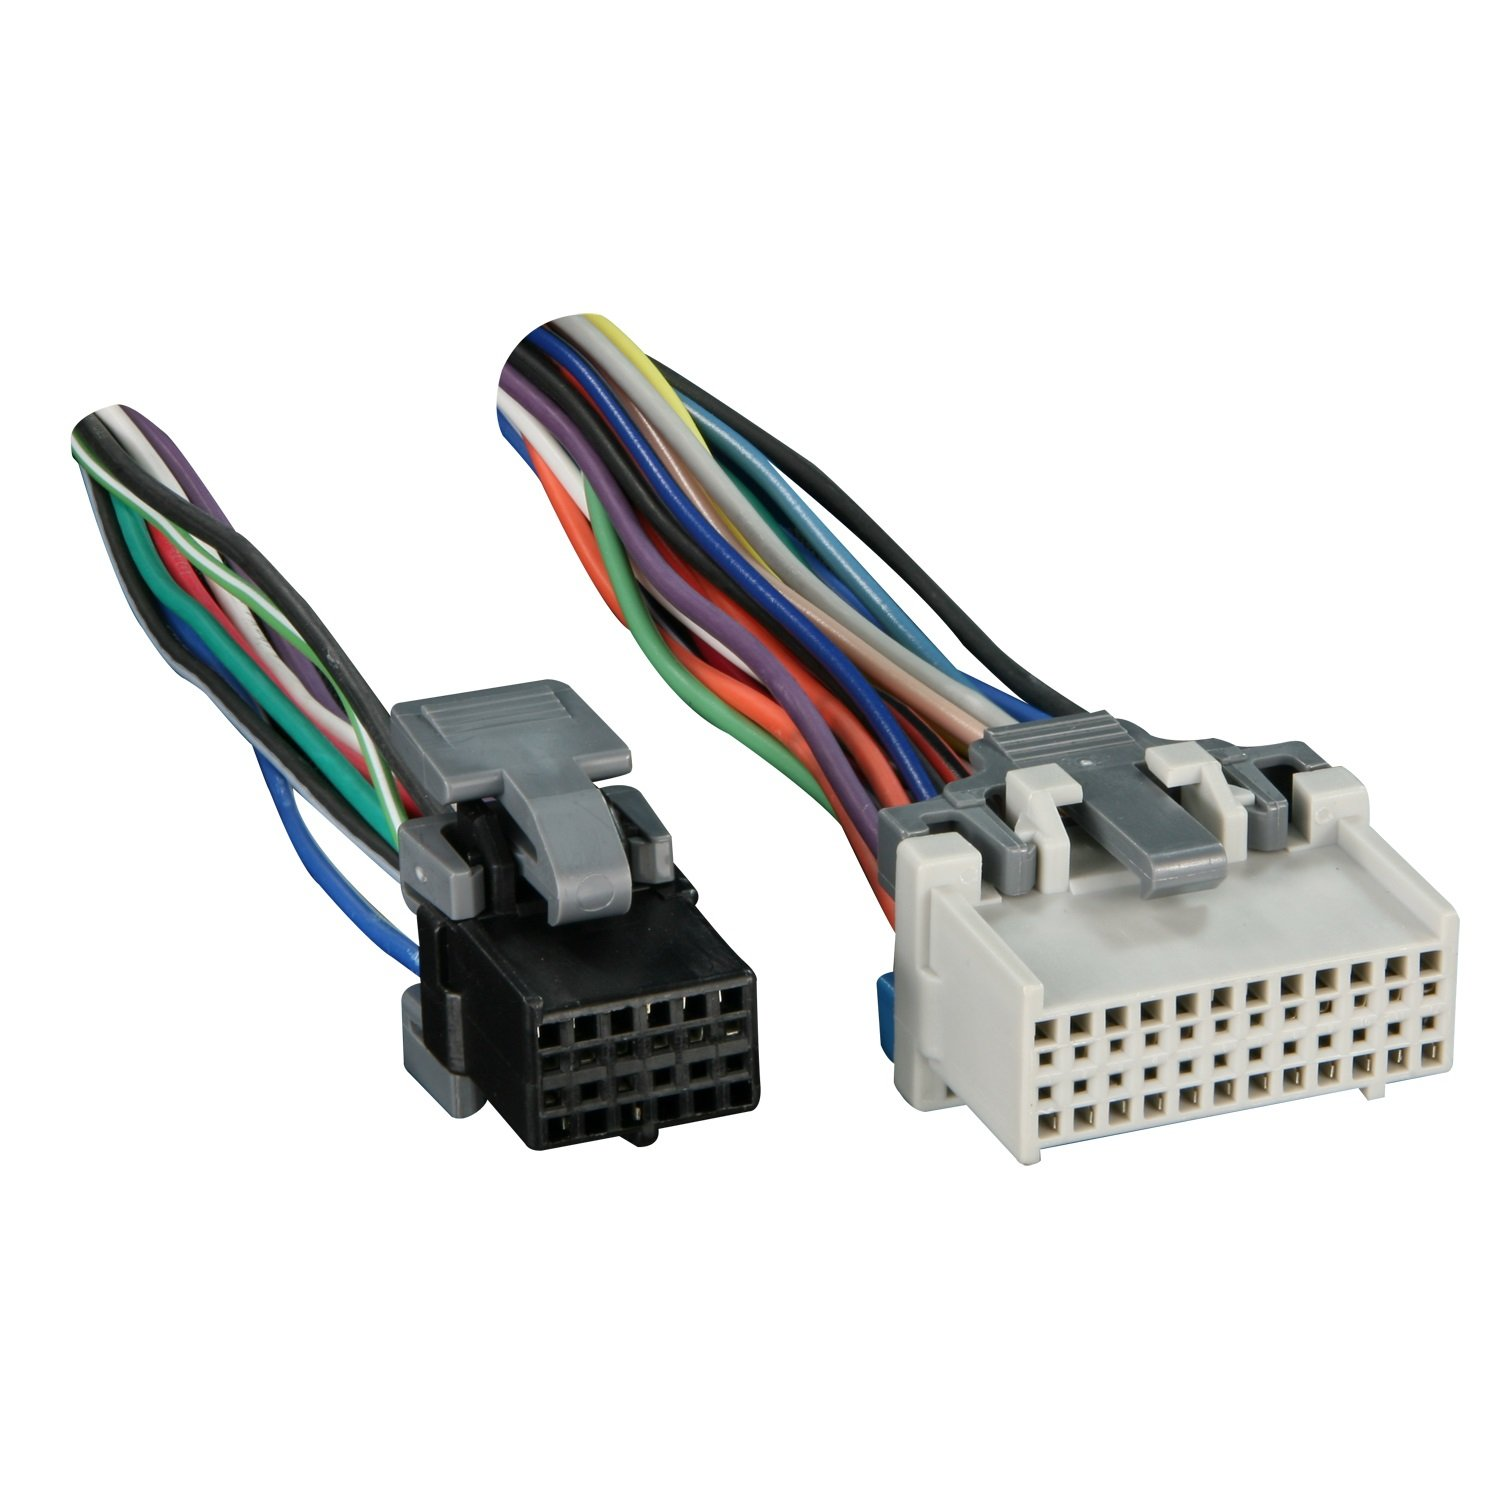 711log4bdML._SL1500_ amazon com metra turbowires 71 2003 1 wiring harness car electronics gm radio wiring harness at webbmarketing.co